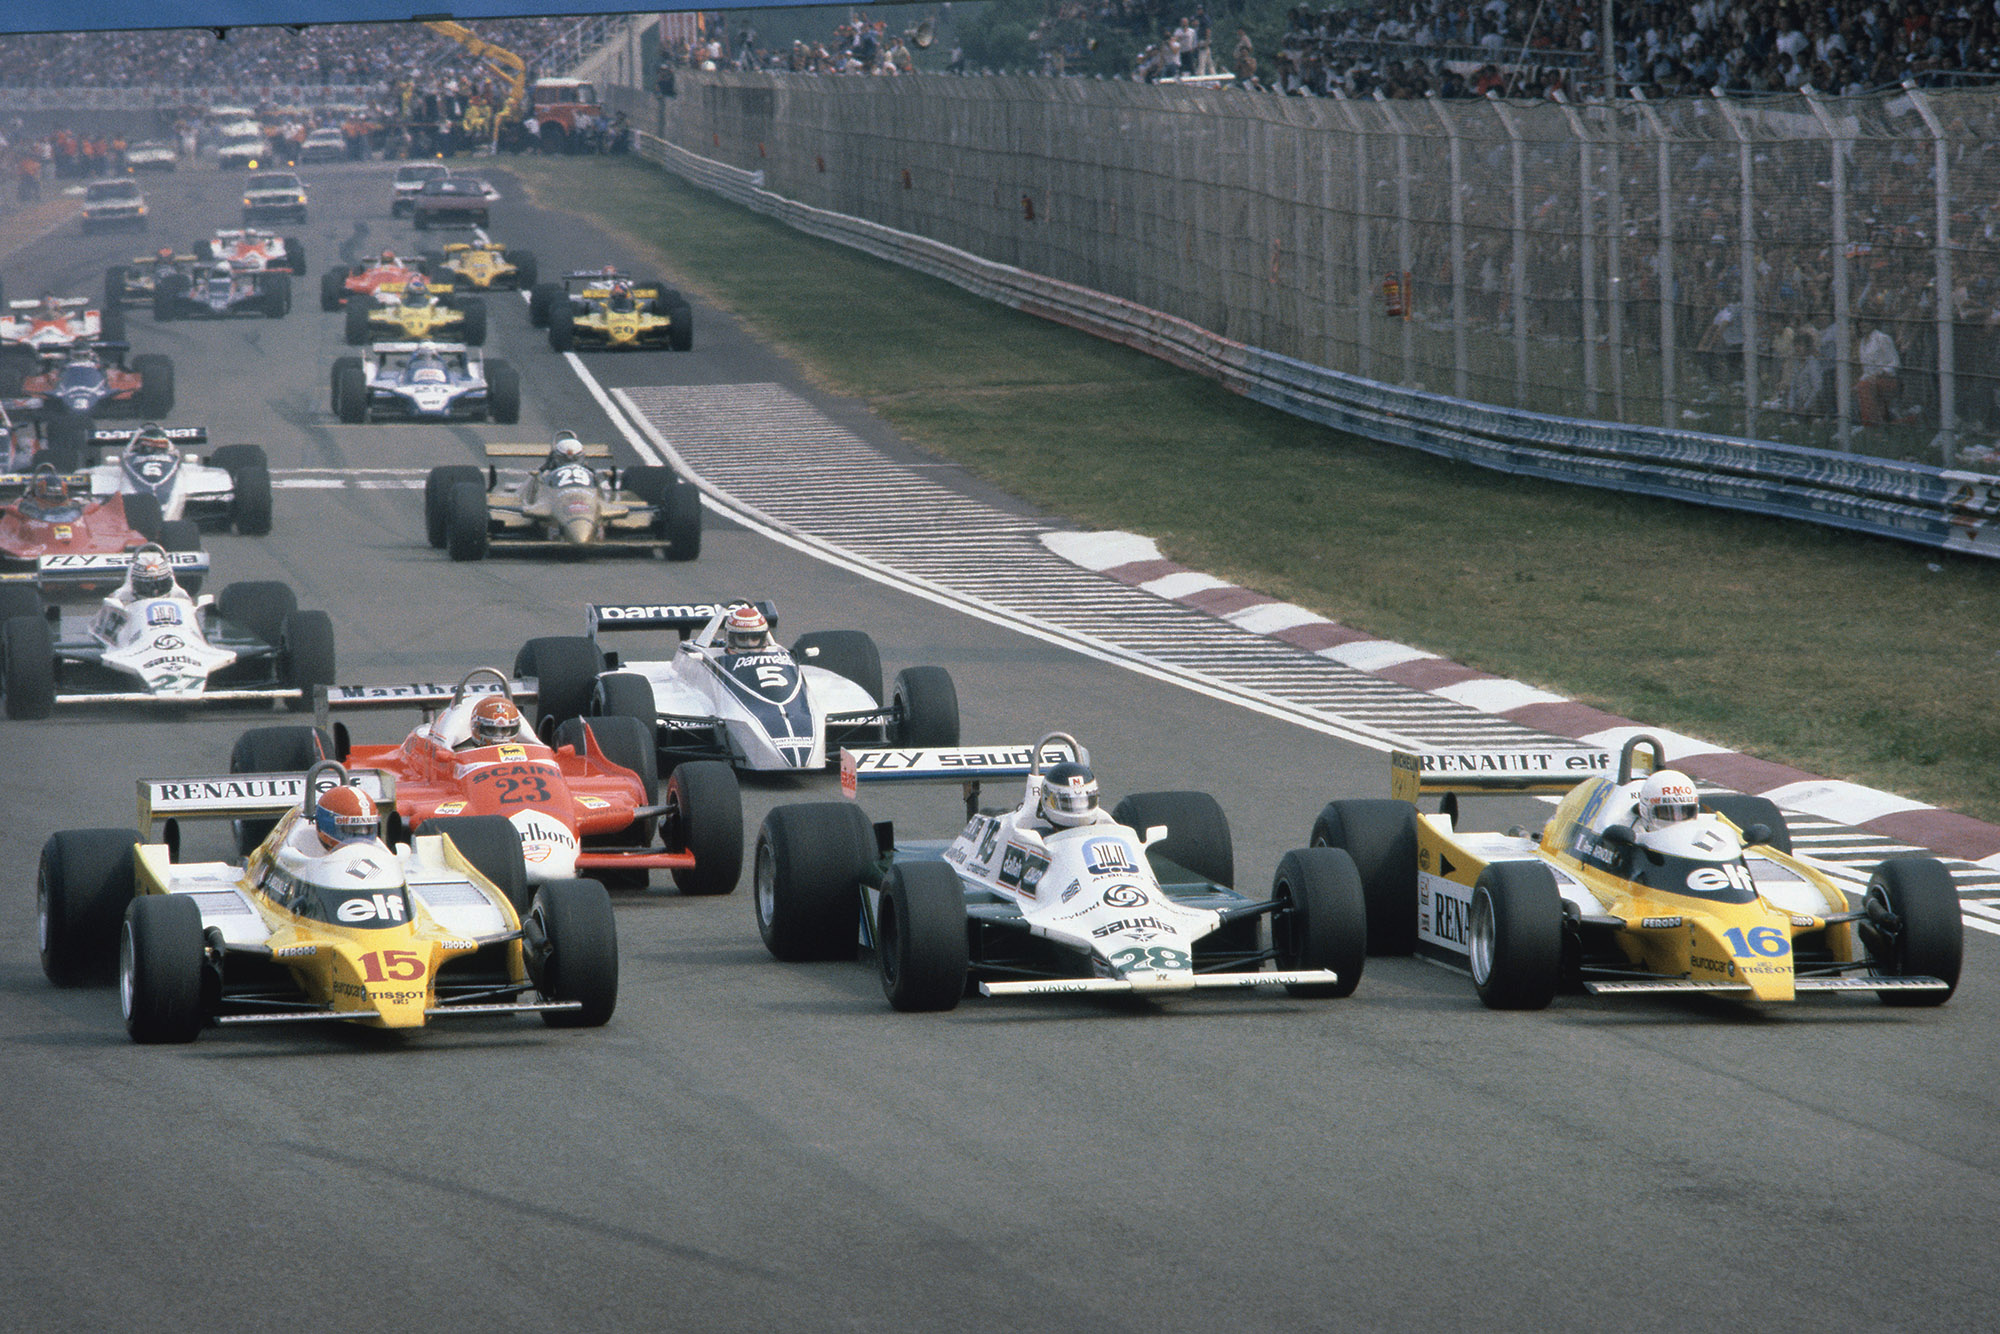 Ground effect cars at the start of the 1980 Italian Grand Prix